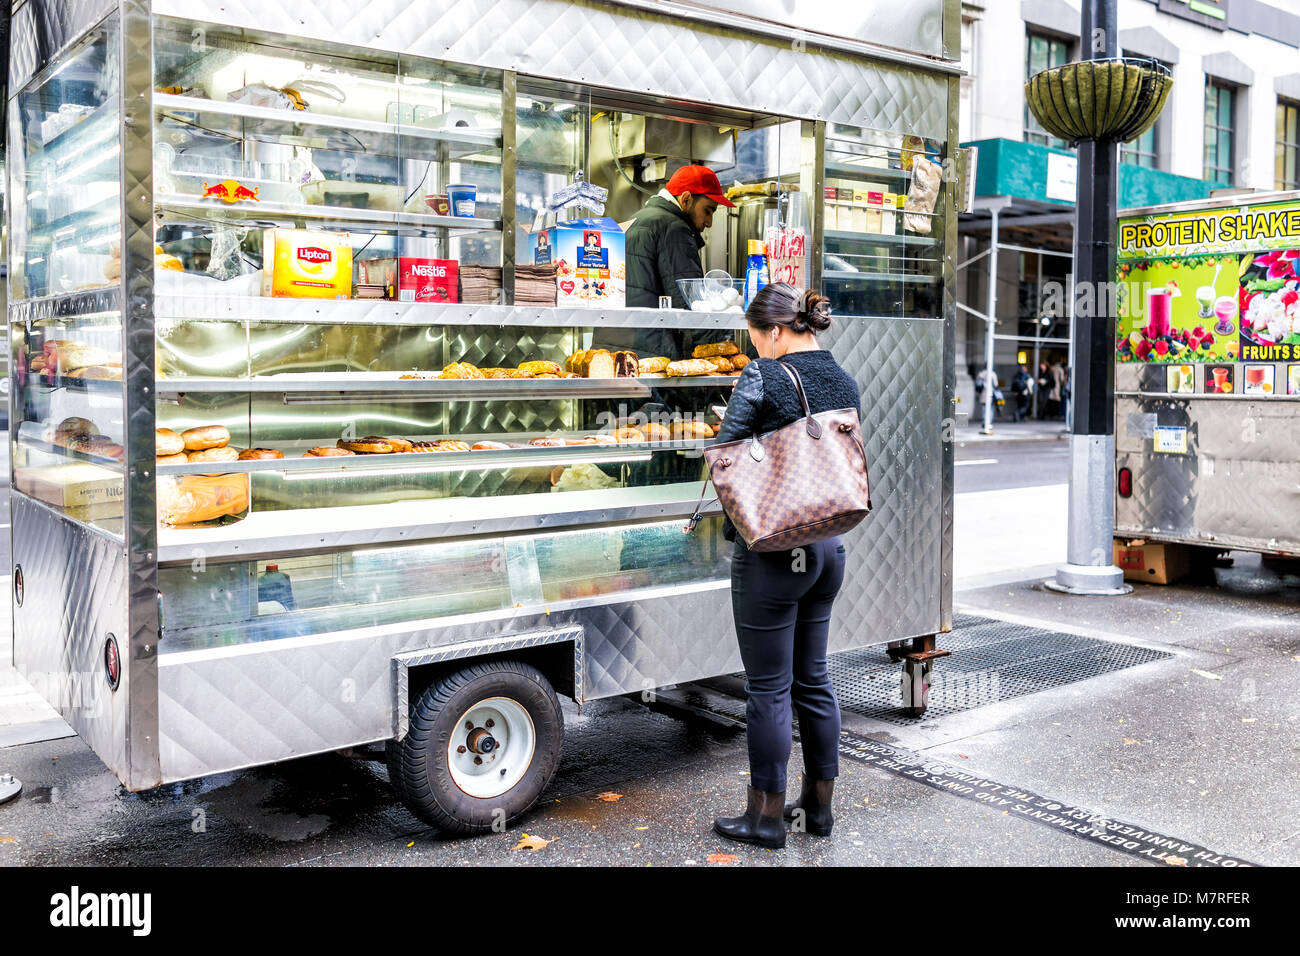 Calexico Nyc Food Truck